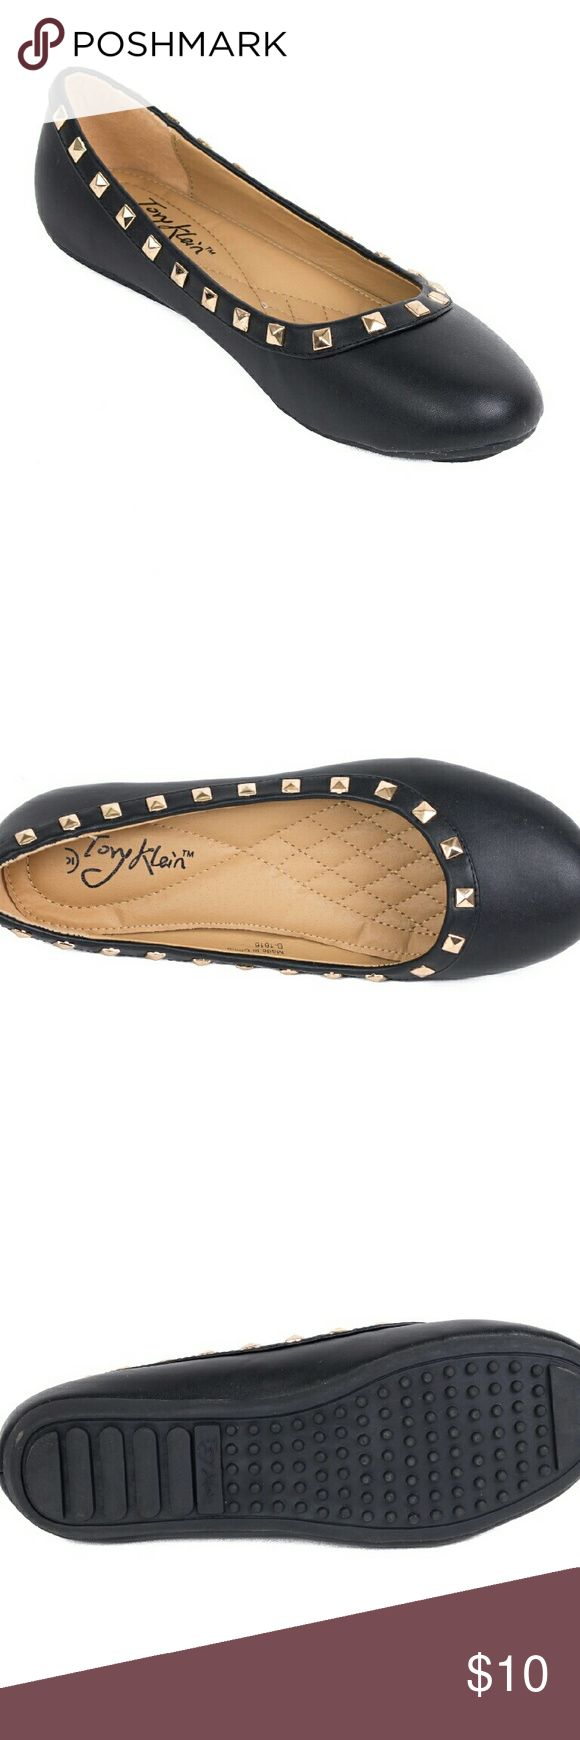 NiB Tory K Studded Ballerina Flats b1616 blk 10 Soft and smooth black flats with shiny studs around the ankle line. Brand new. Soft cushioned sole, very comfortable. Selling super cheap because the box they were in was damaged, but the flats are in perfect condition! Tory K Shoes Flats & Loafers